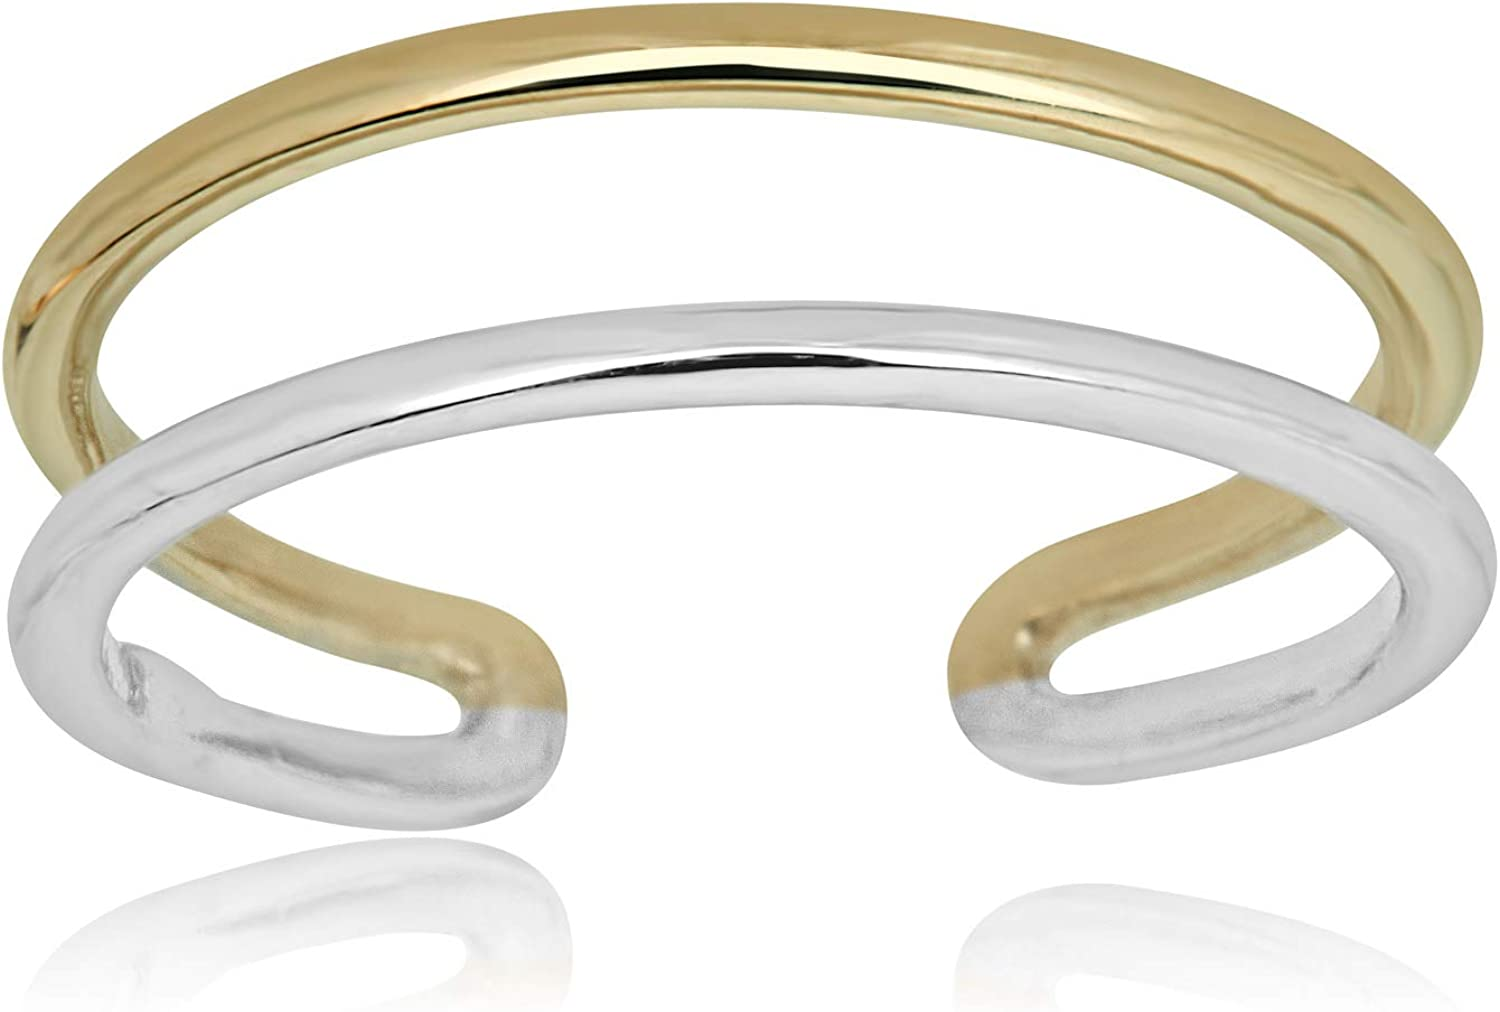 AVORA 10K Gold Two-Tone Two Row Ring Fort Worth Mall Toe Minimalist In stock Adjustable